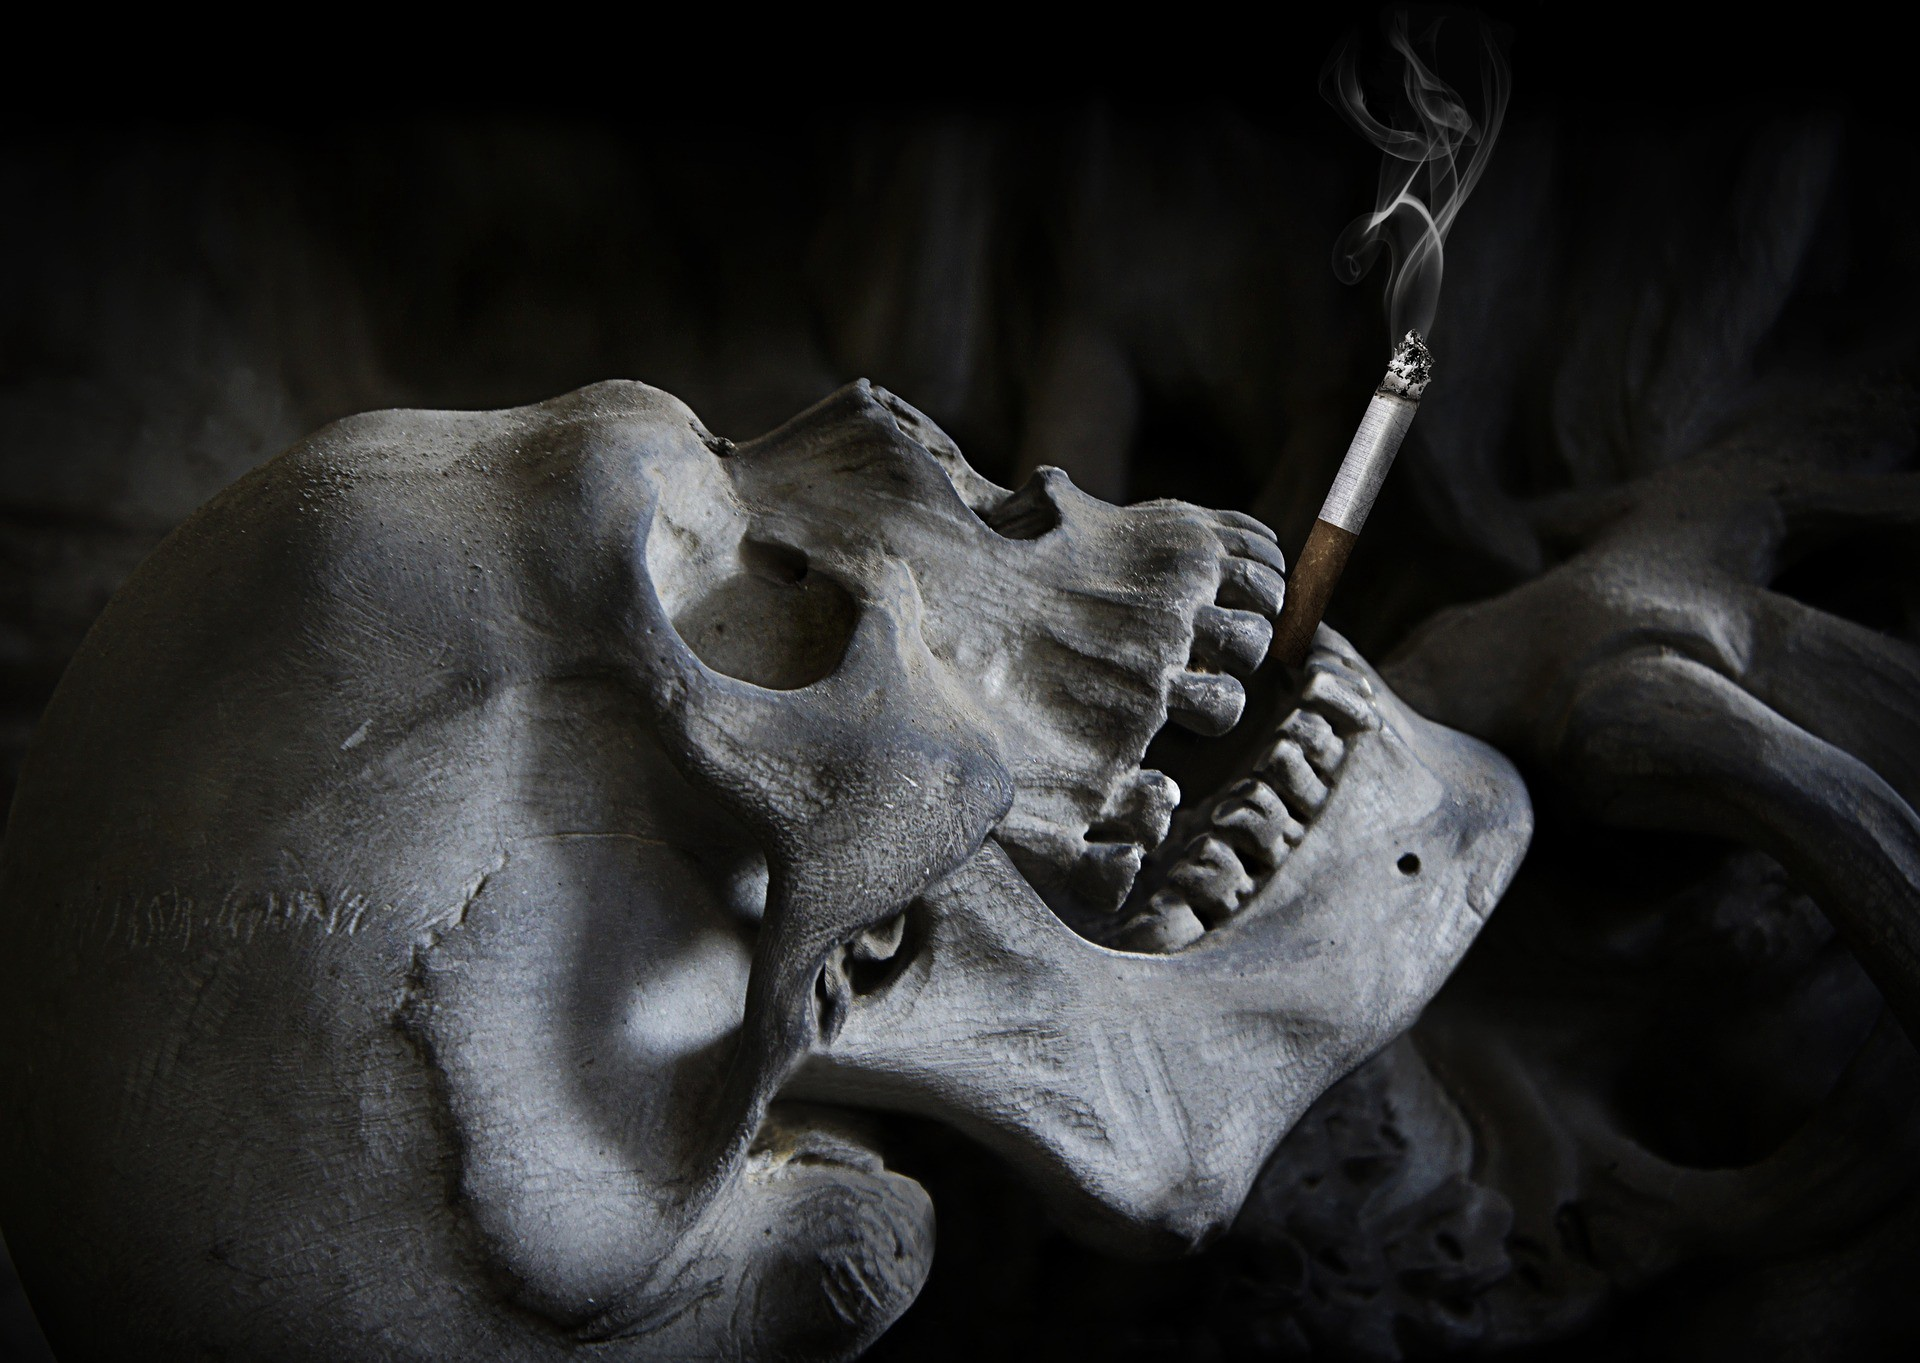 Smoking kills but not in the way you think it does